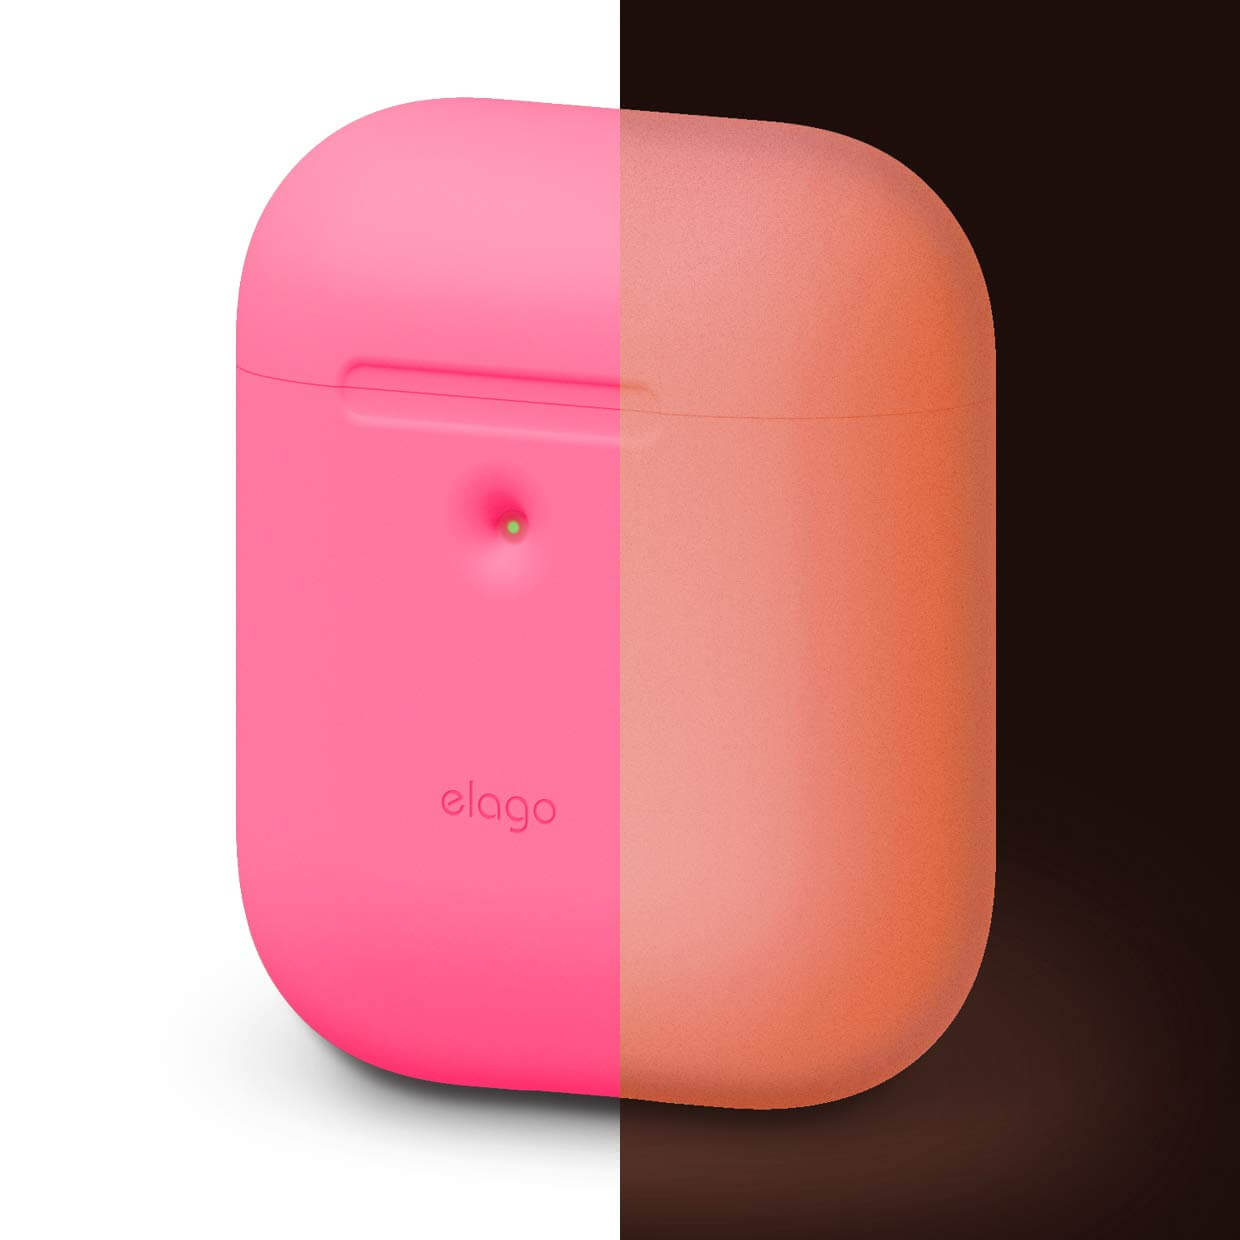 Elago Airpods Silicone Case - силиконов калъф за Apple Airpods 2 with Wireless Charging Case (розов-фосфор)